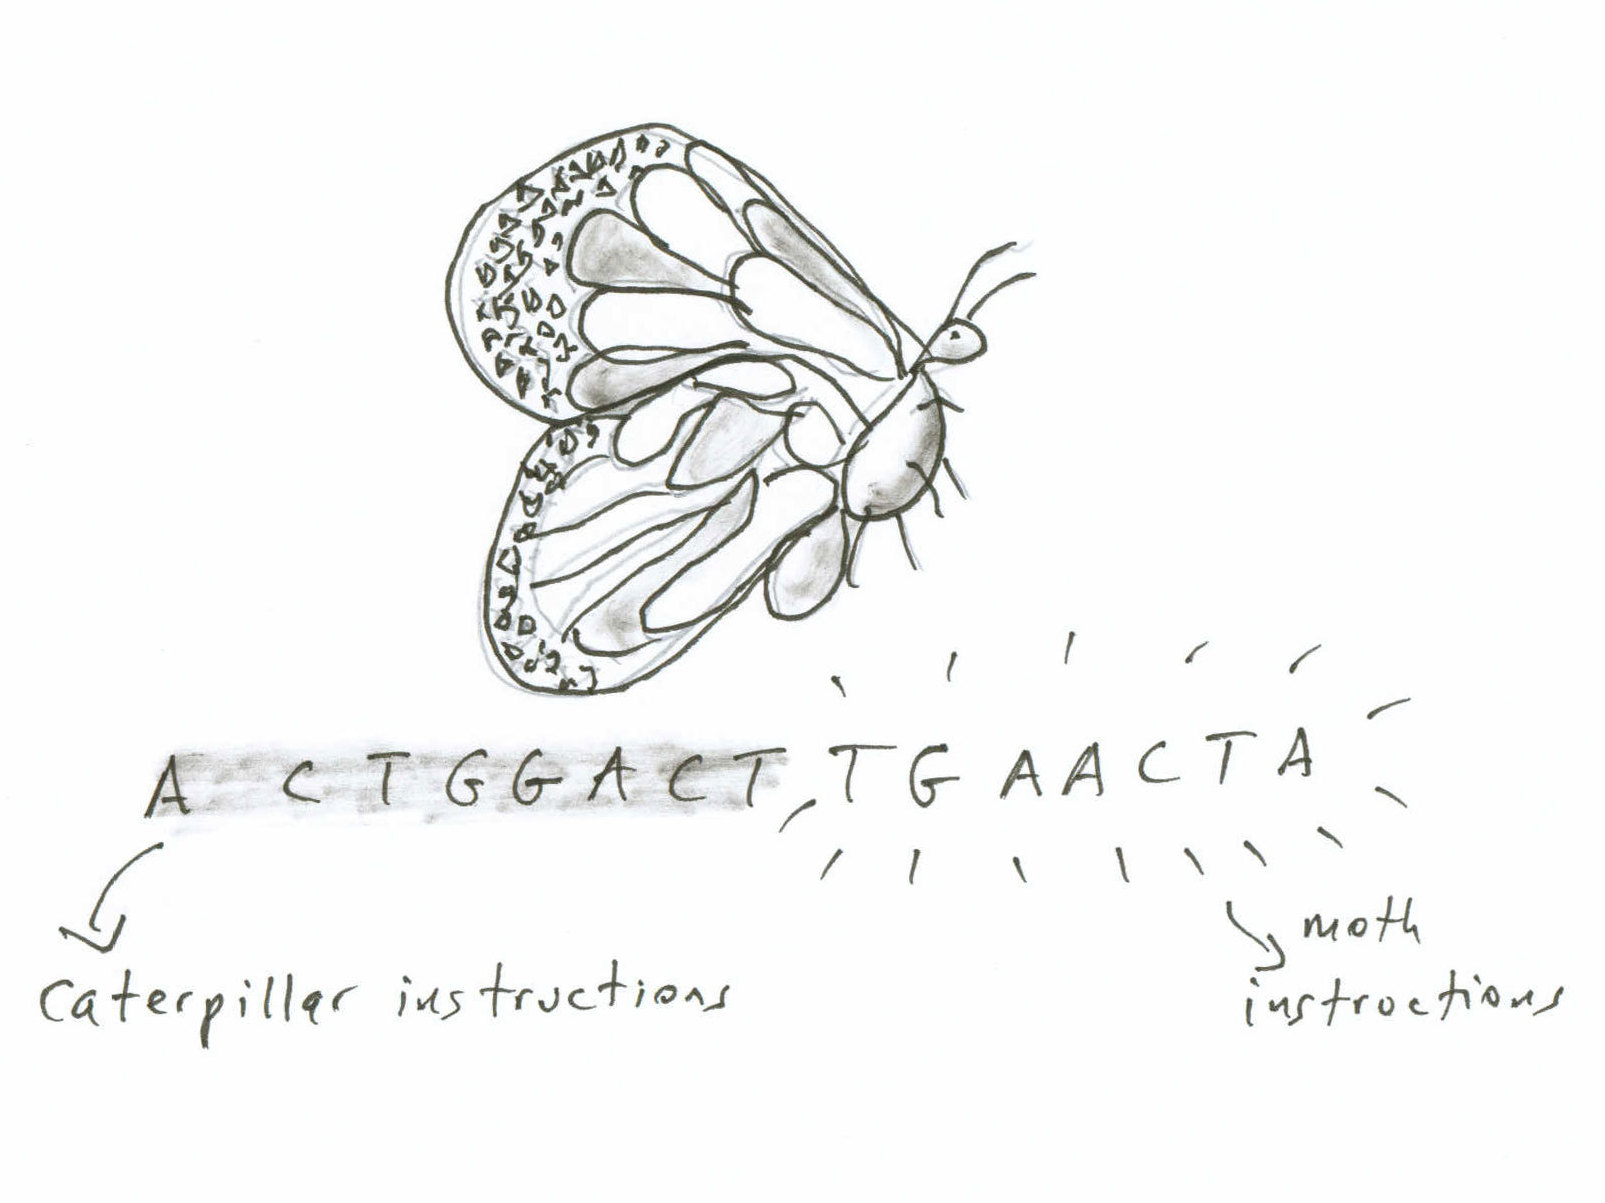 Metaphor in the death of the moth